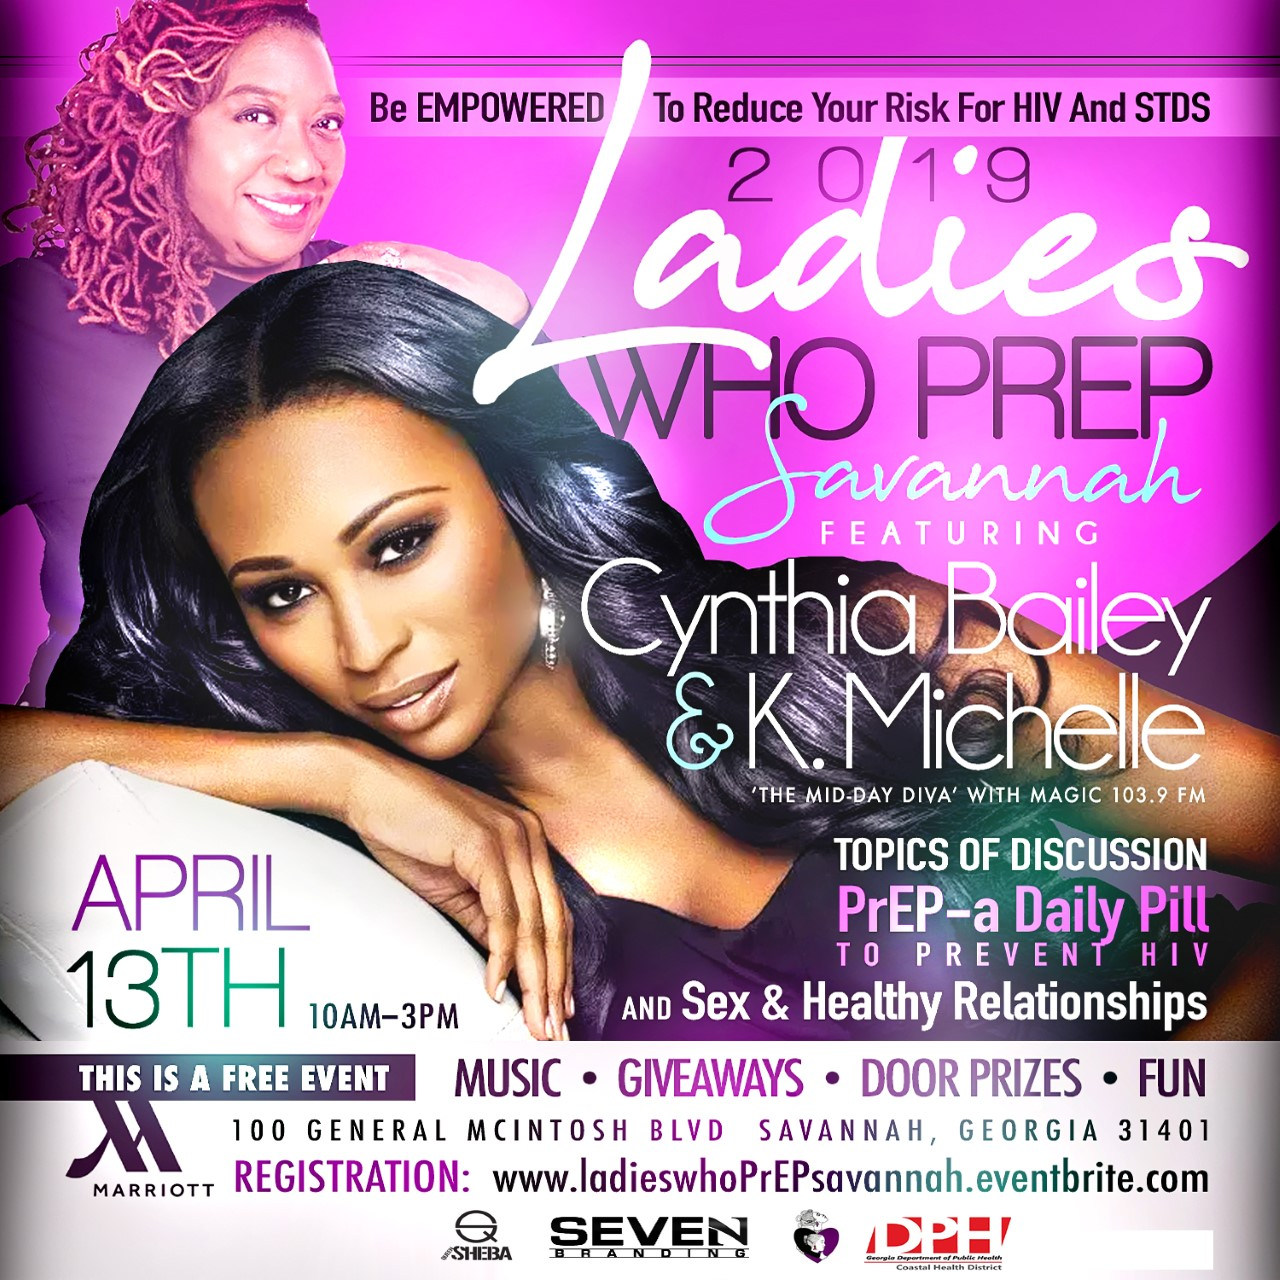 Special appearance by Cynthia Bailey